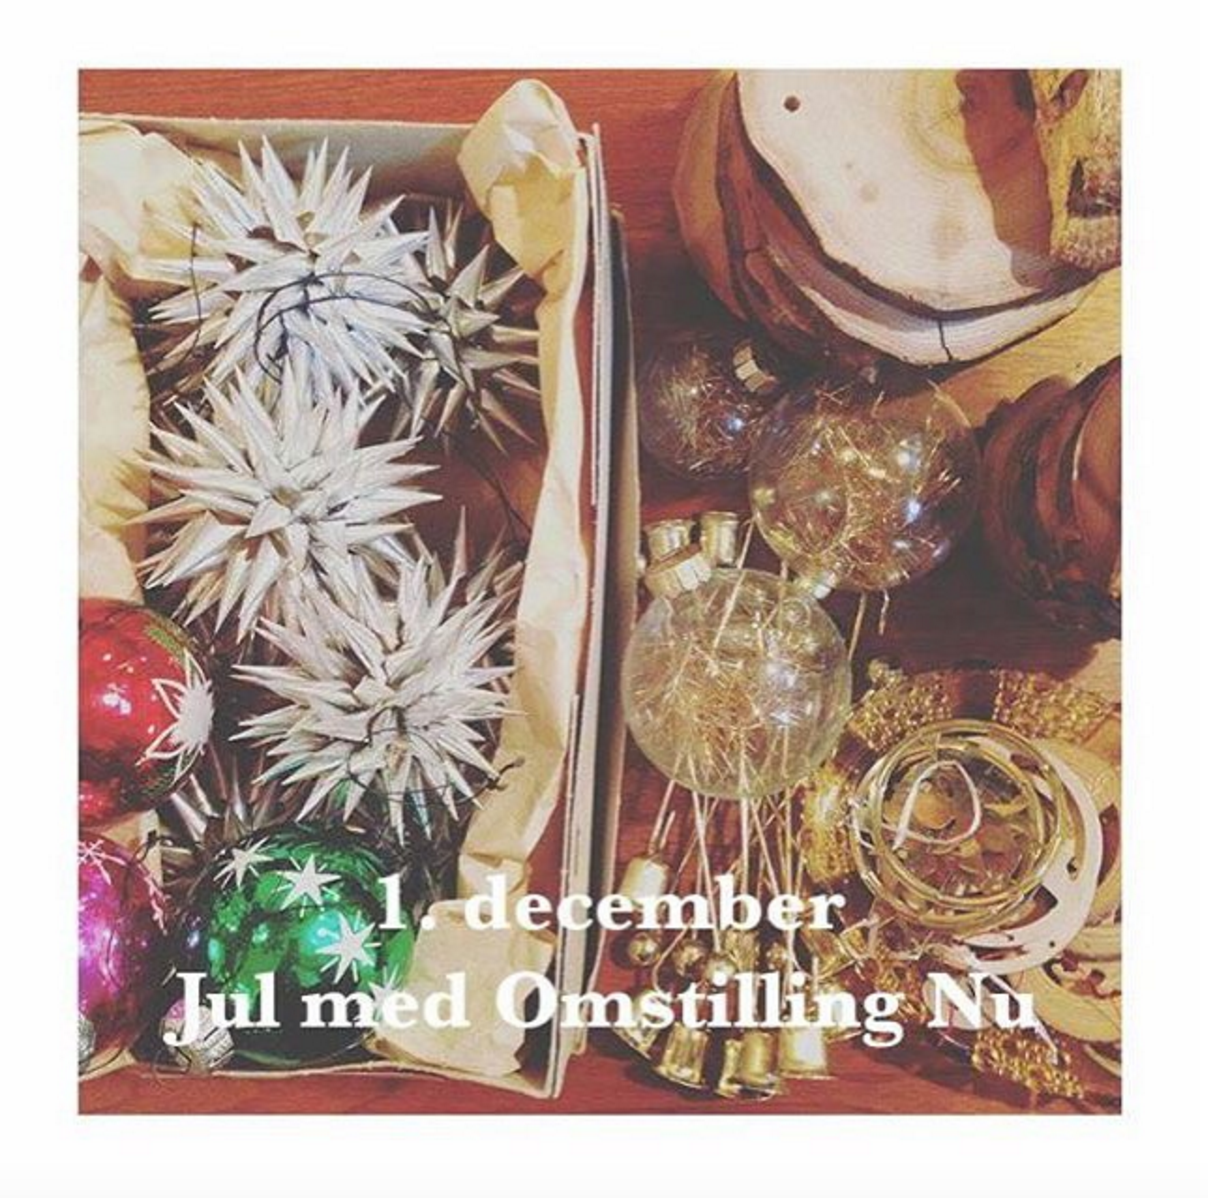 Mangler du pynt til juletræet? Gør julen bæredygtig og find vintage julepynten i dine lokale grenbrugs og antik butikker.  @oldkbh @aestetikken Find your vintage Christmas deco in your local second-hand shops.  #cirkulærøkonomi #sustainablechristmas #bæredygtigjul #reusereducerecycle #recycle #genbrug #vintagechristmas #secondhandchristmas #christmasdeco #julmedomstillingnu #ecofriendlychristmas #grønjulekalender